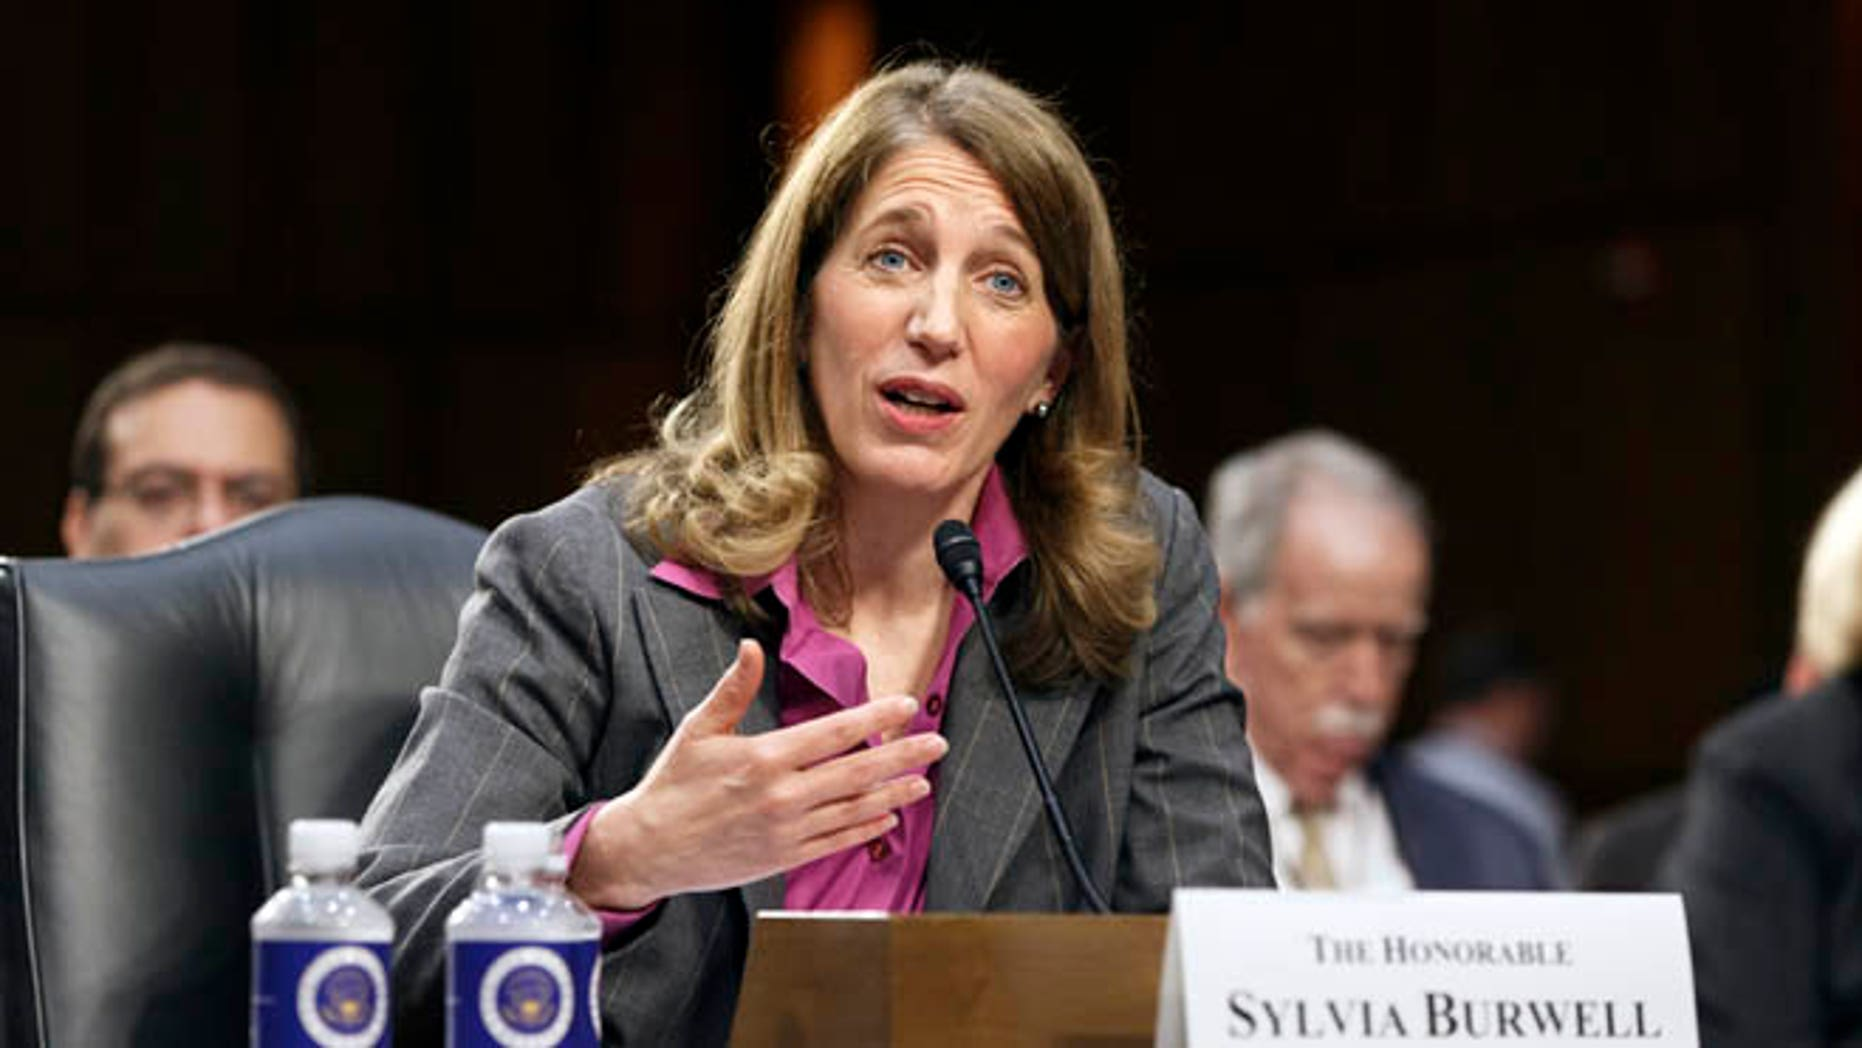 May 14, 2014: Sylvia Burwell, then the nominee to become secretary of Health and Human Services, on Capitol Hill in Washington, D.C.